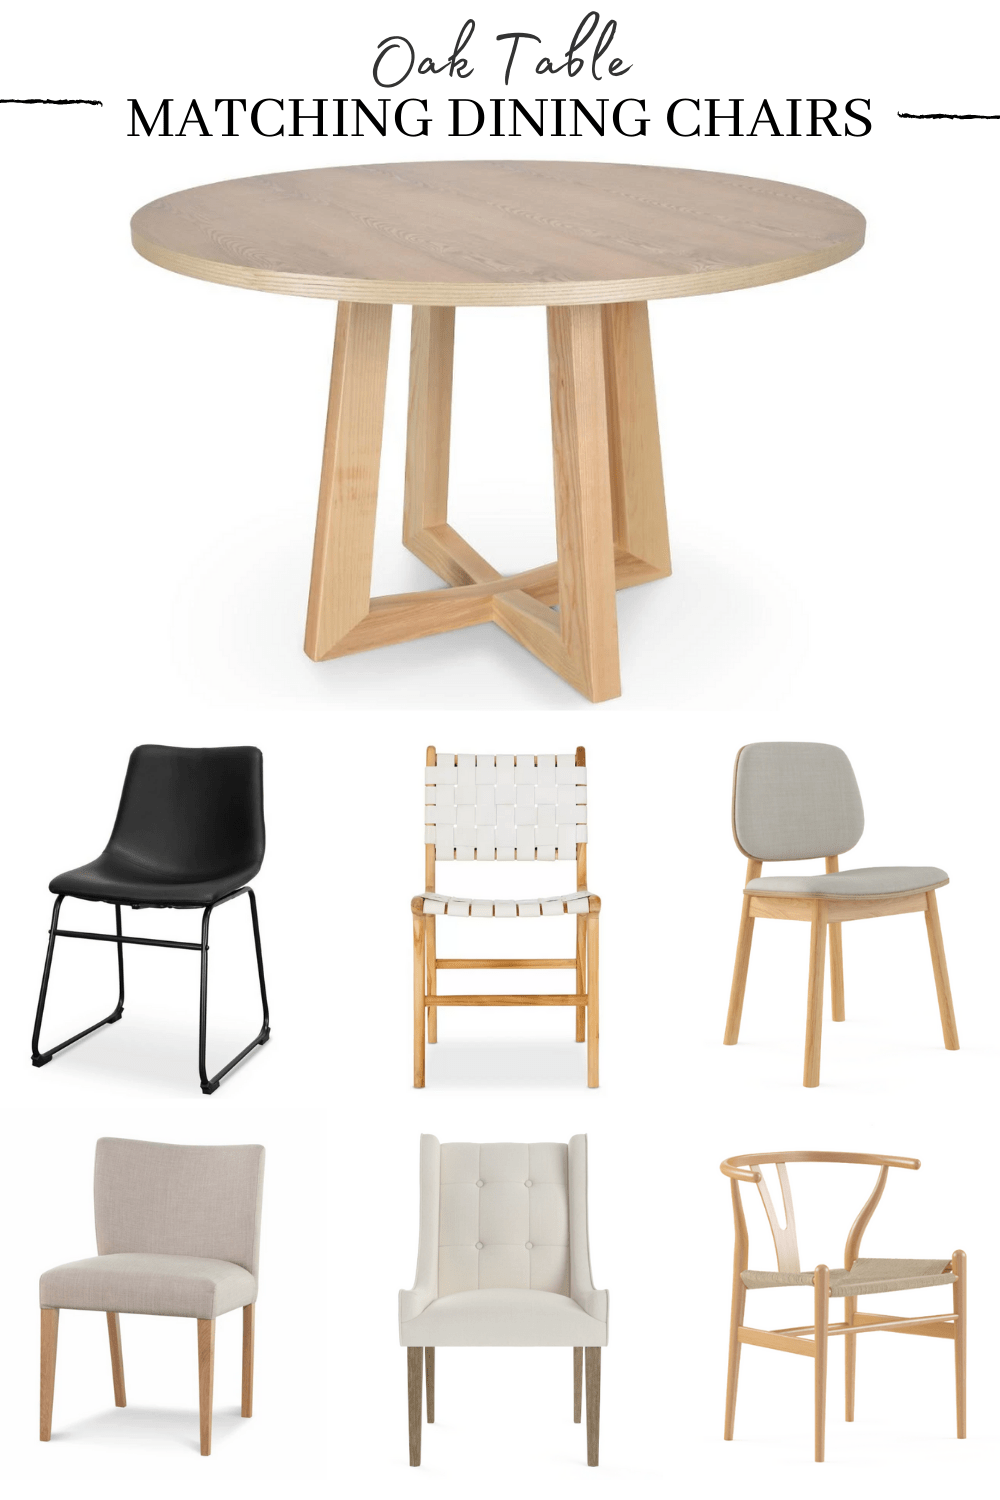 dining chairs for a light timber table